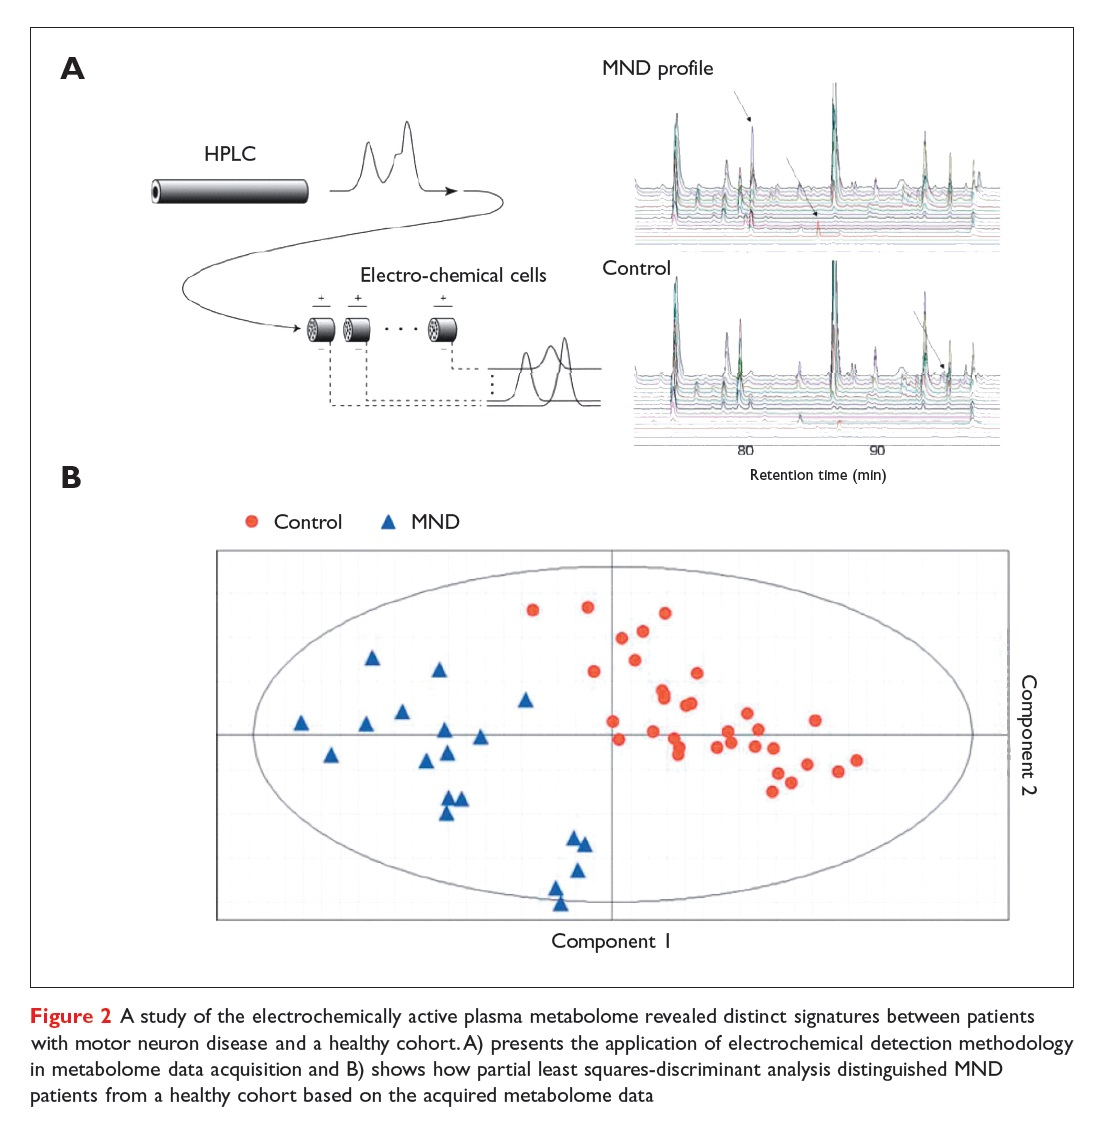 Figure 2 A study of the electrochemically active plasma metabolome revealed distinct signatures